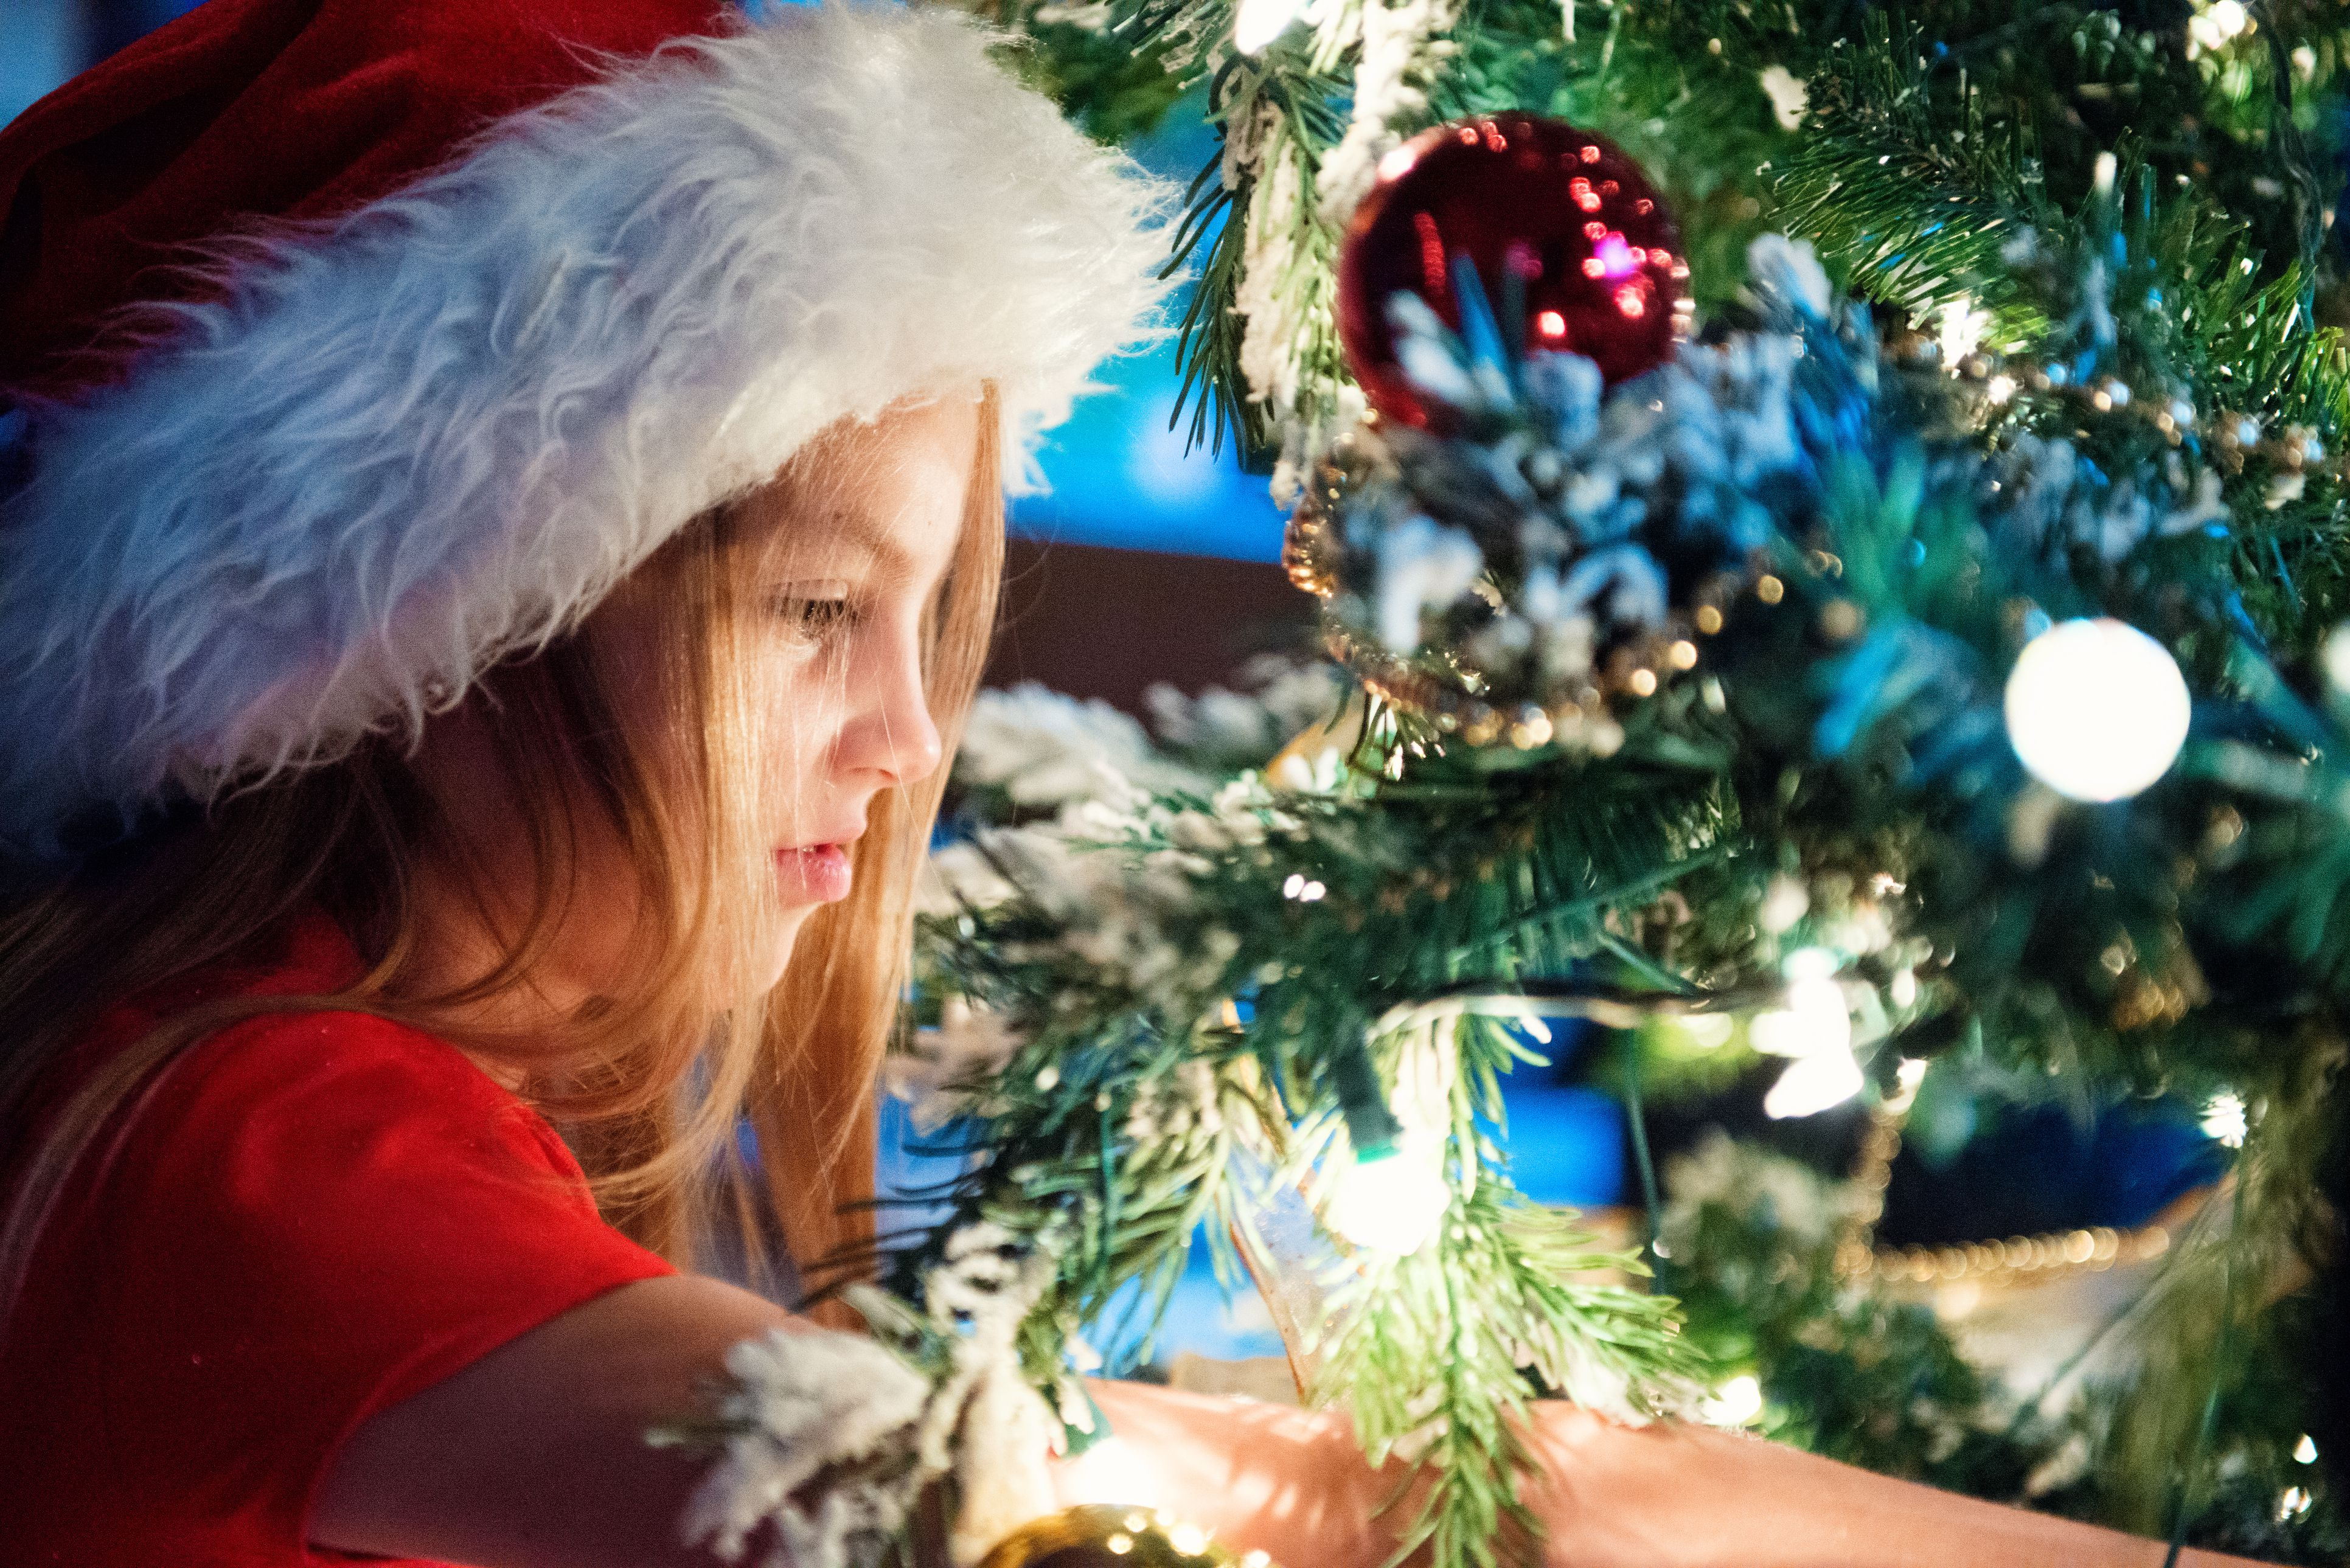 A little girl in a Santa hat by the Christmas tree